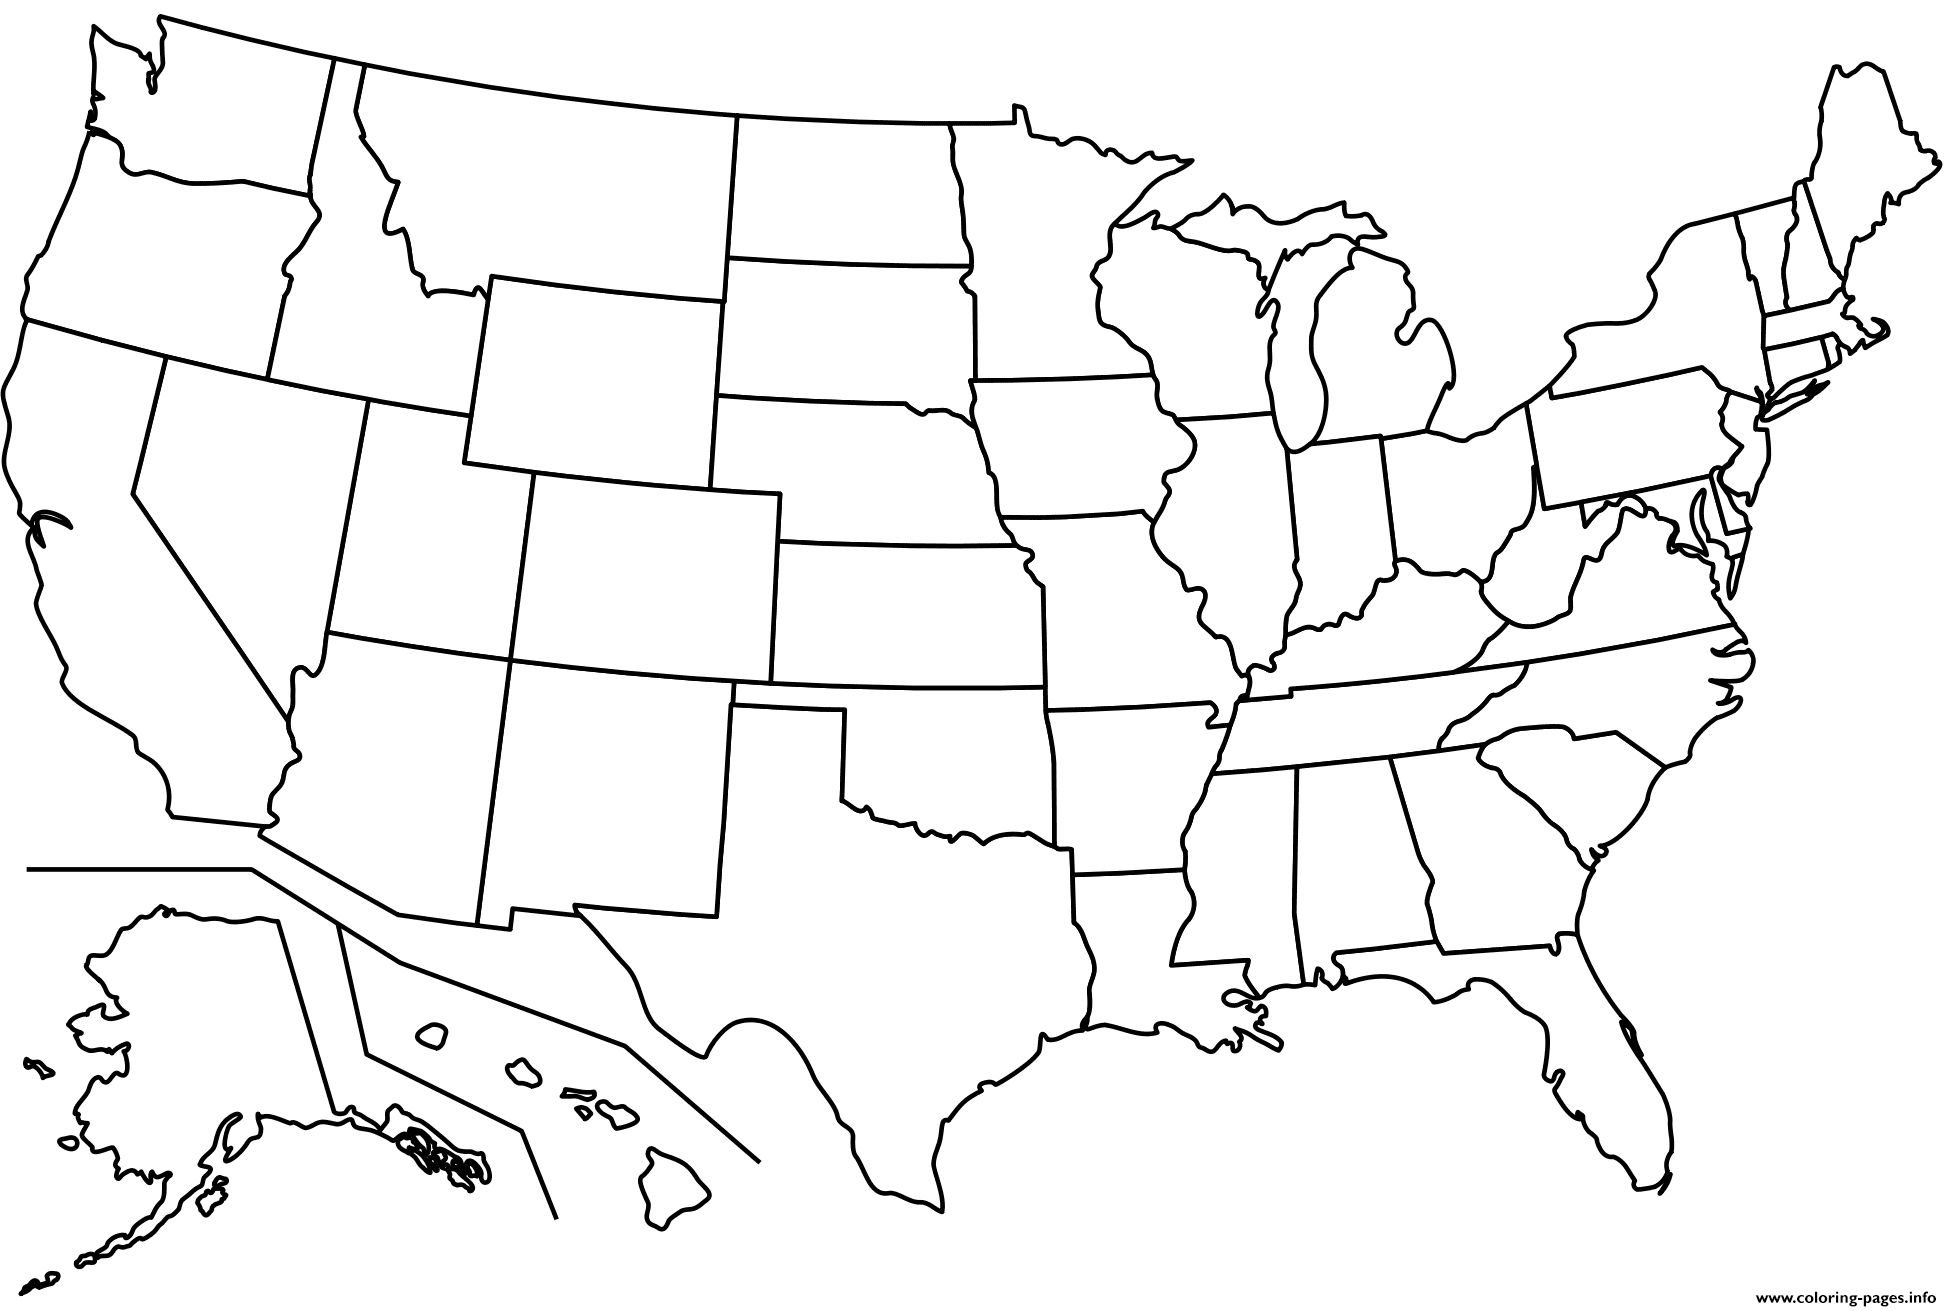 Outline Map Of Us States coloring pages